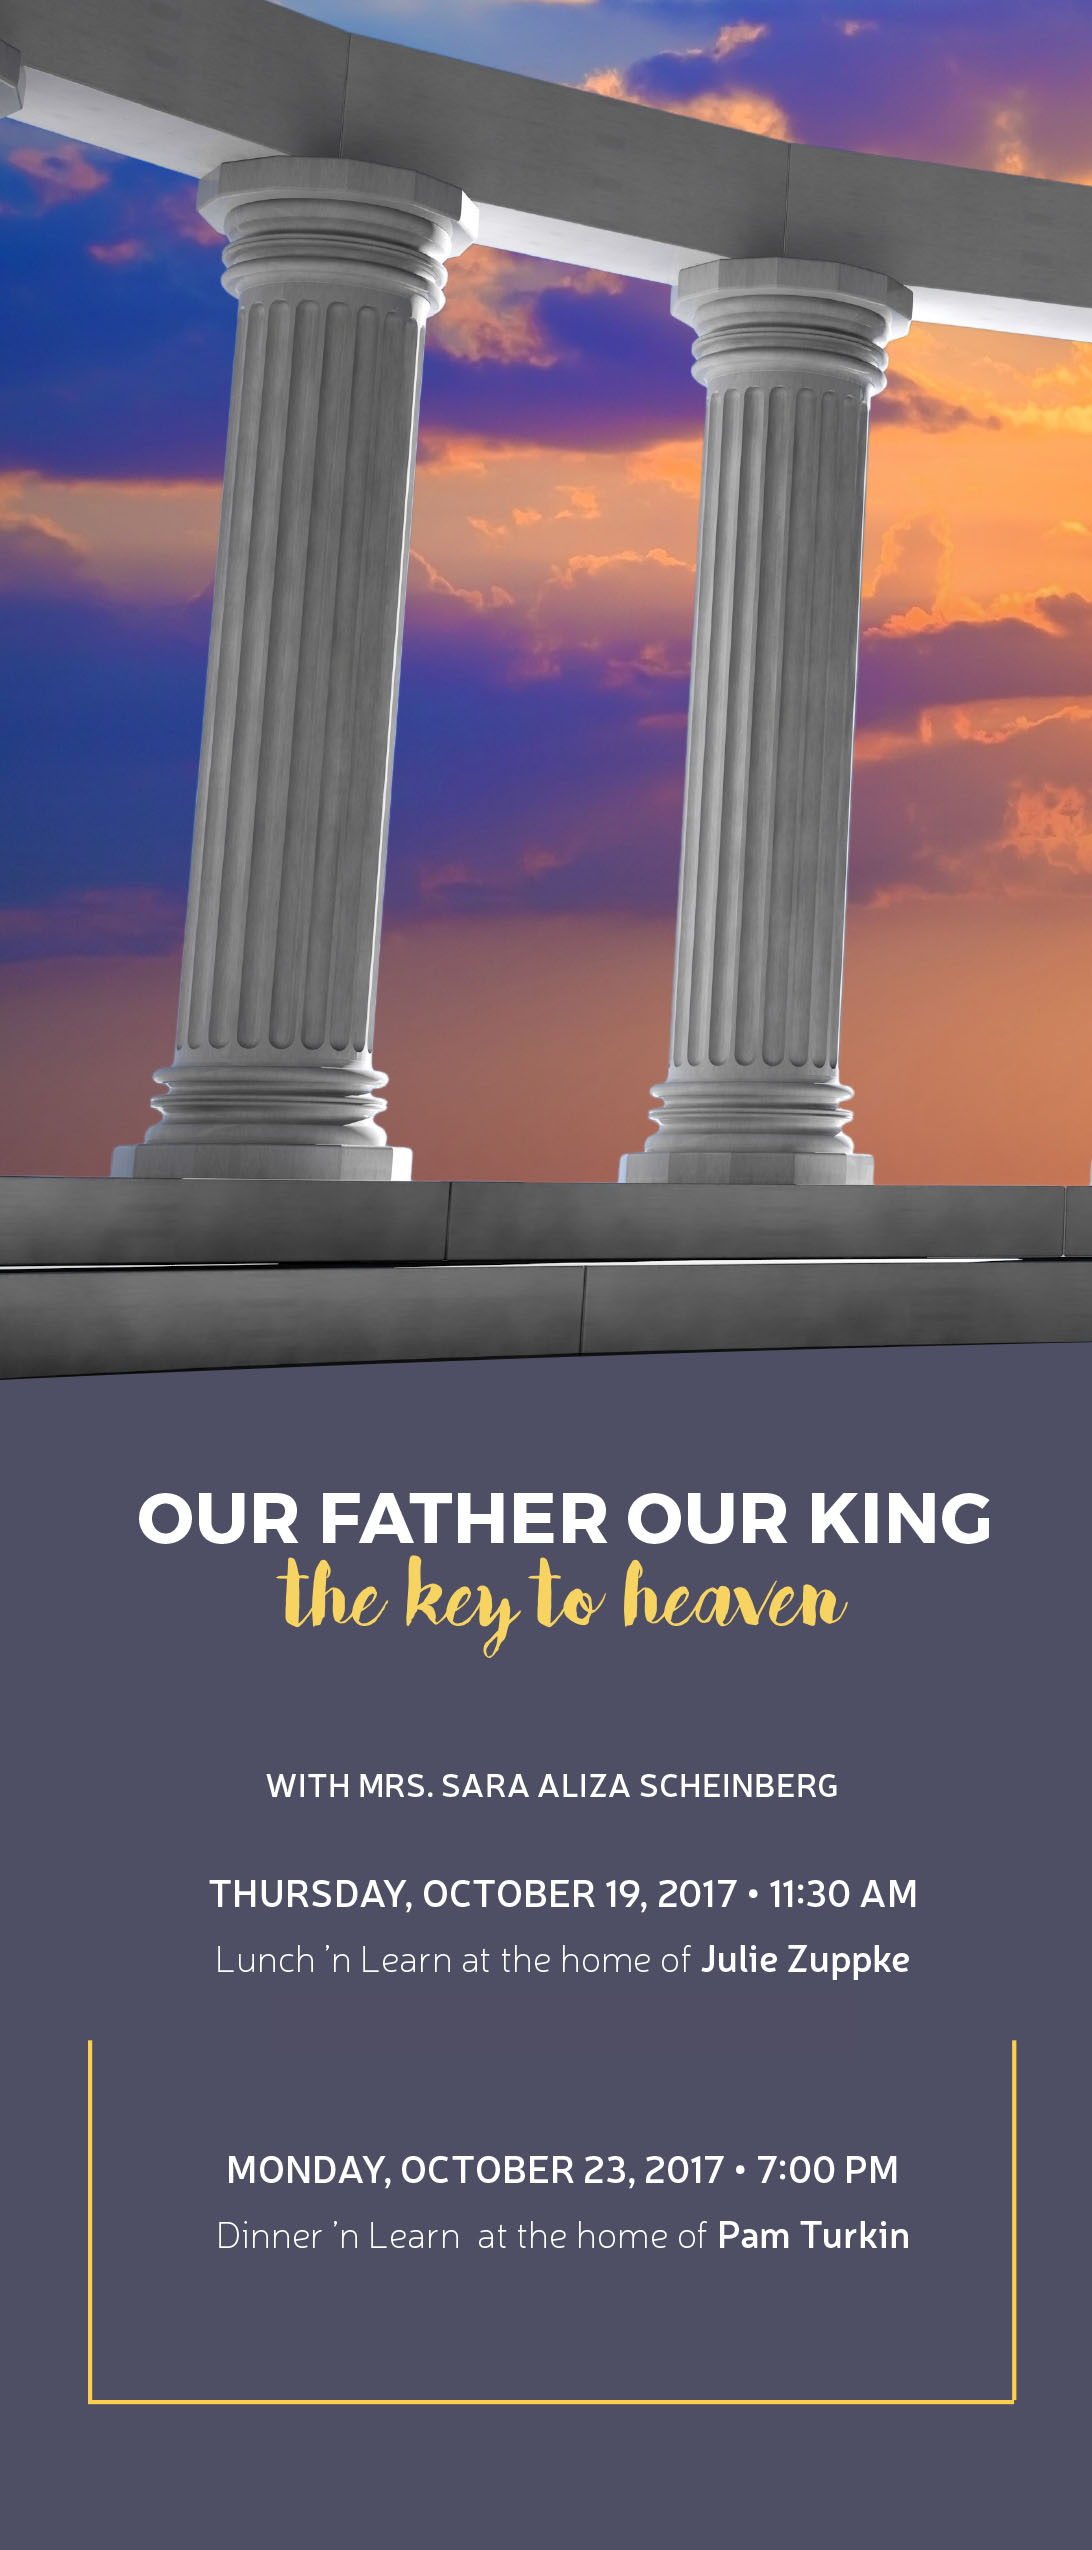 Pillars: Our Father Our King - The Key to Heaven Lunch 'n Learn